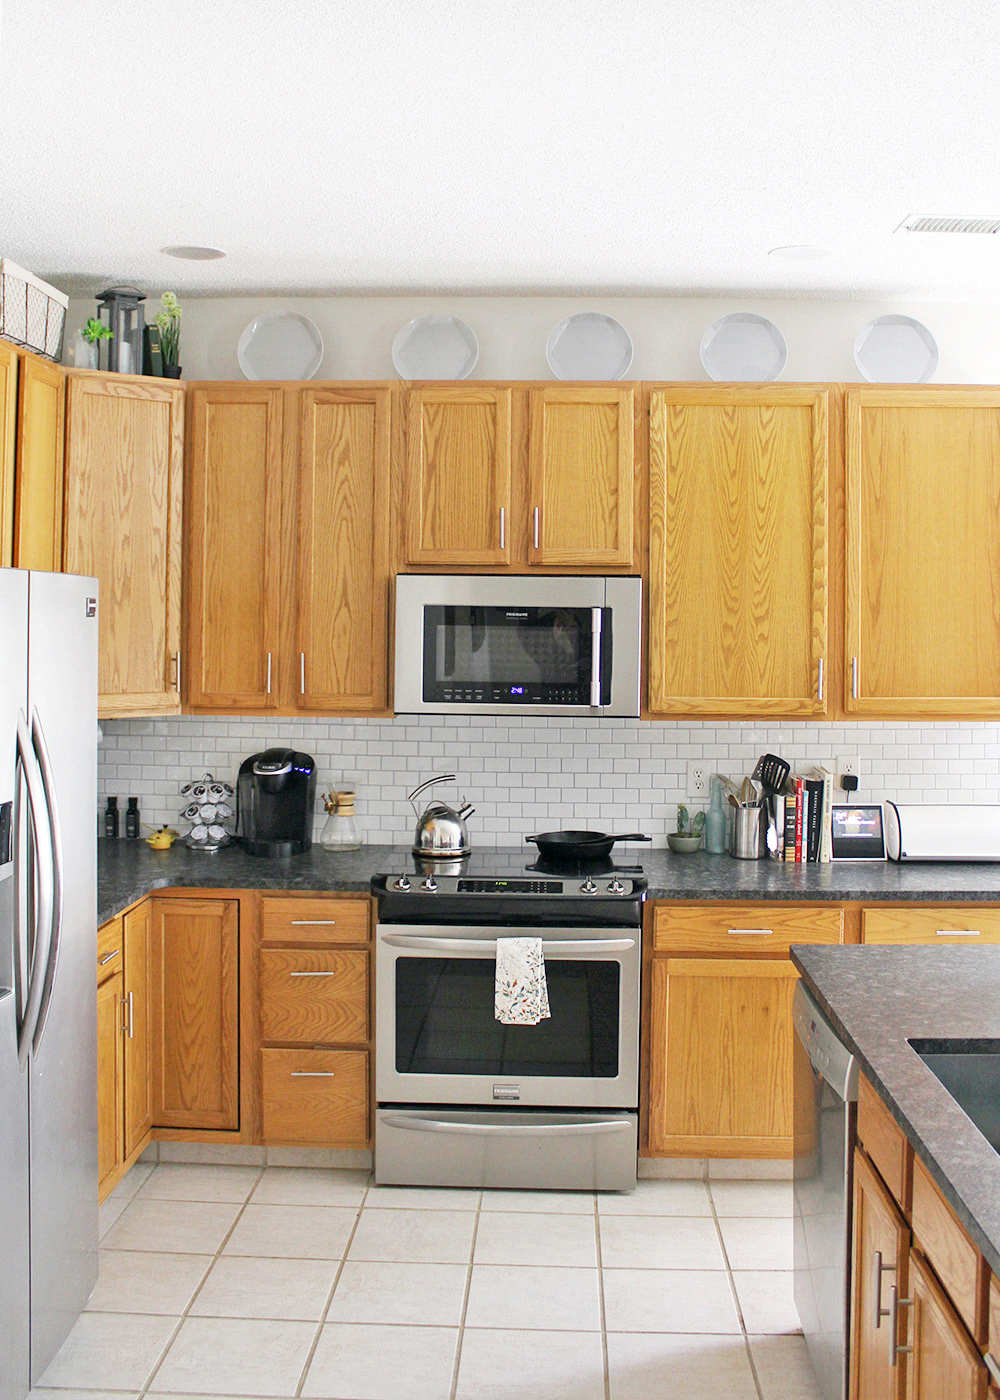 Decorating Over Kitchen Cabinets for Under $60